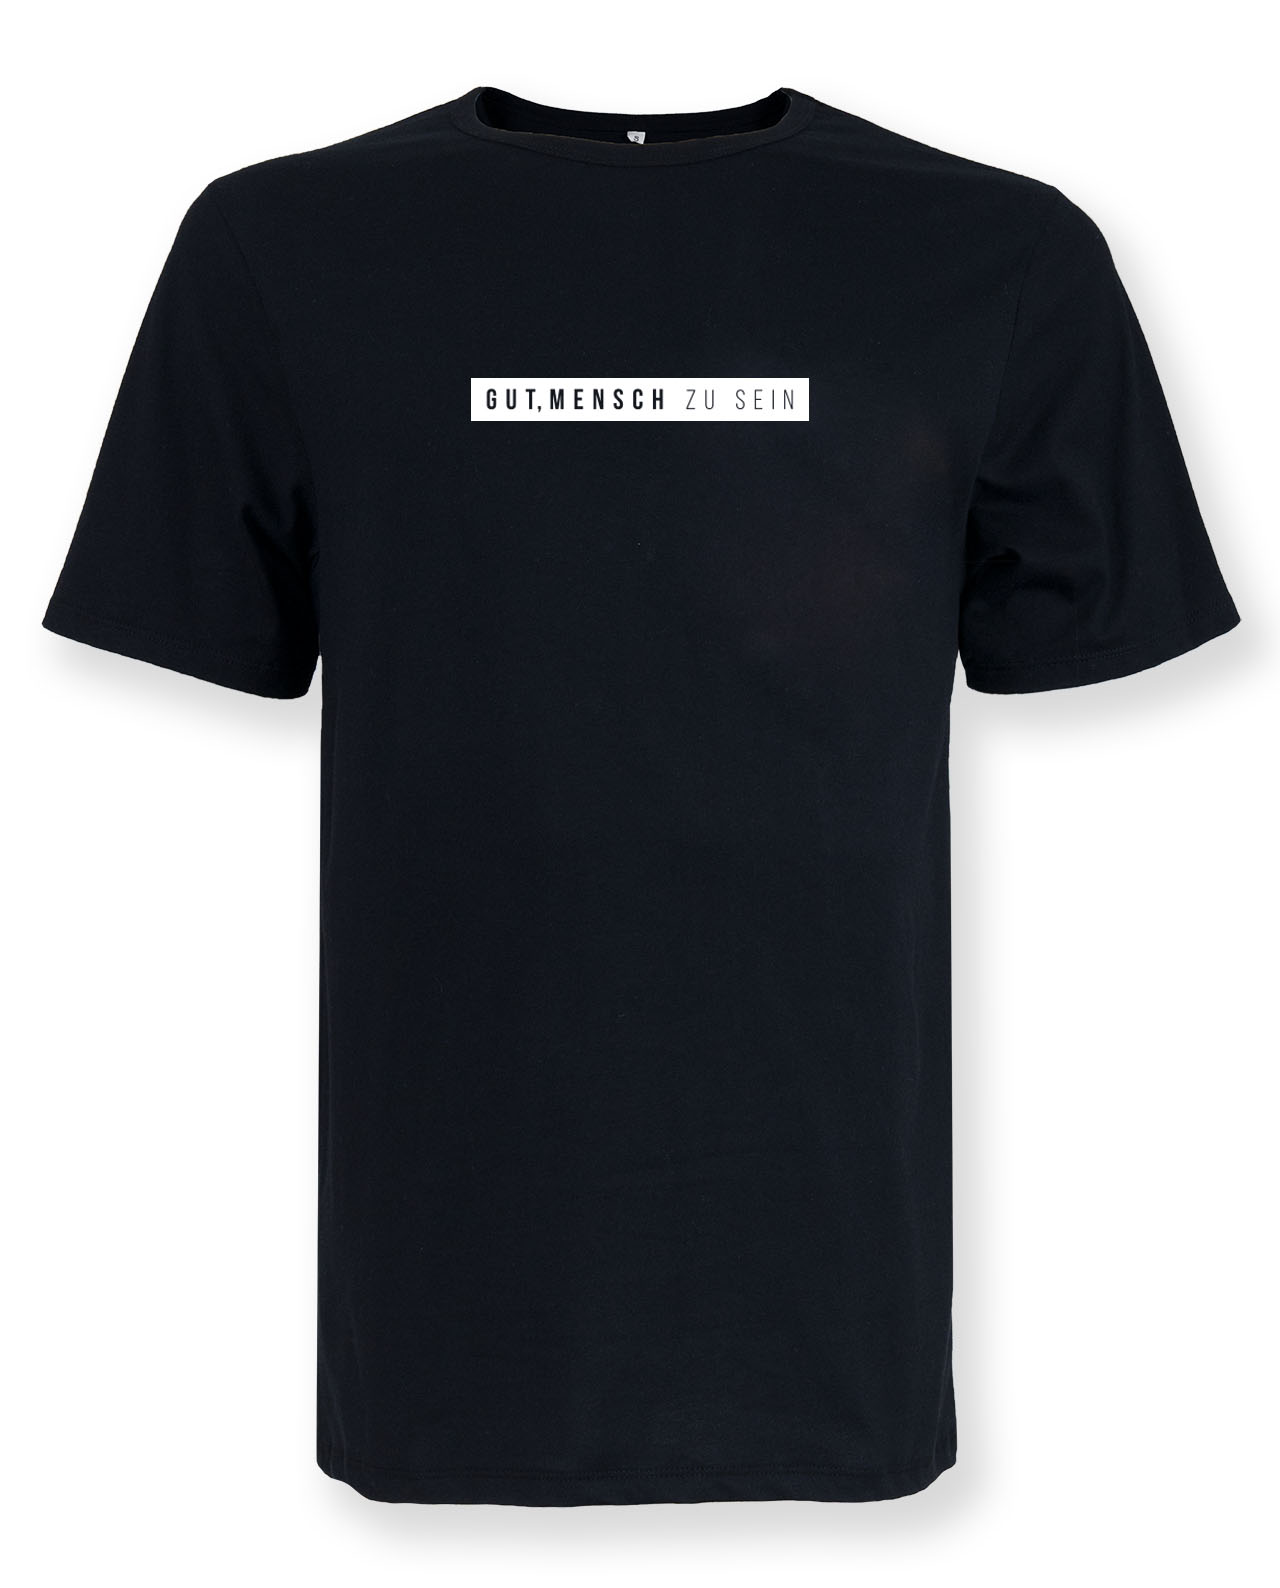 gutmensch shirter, herren - degree